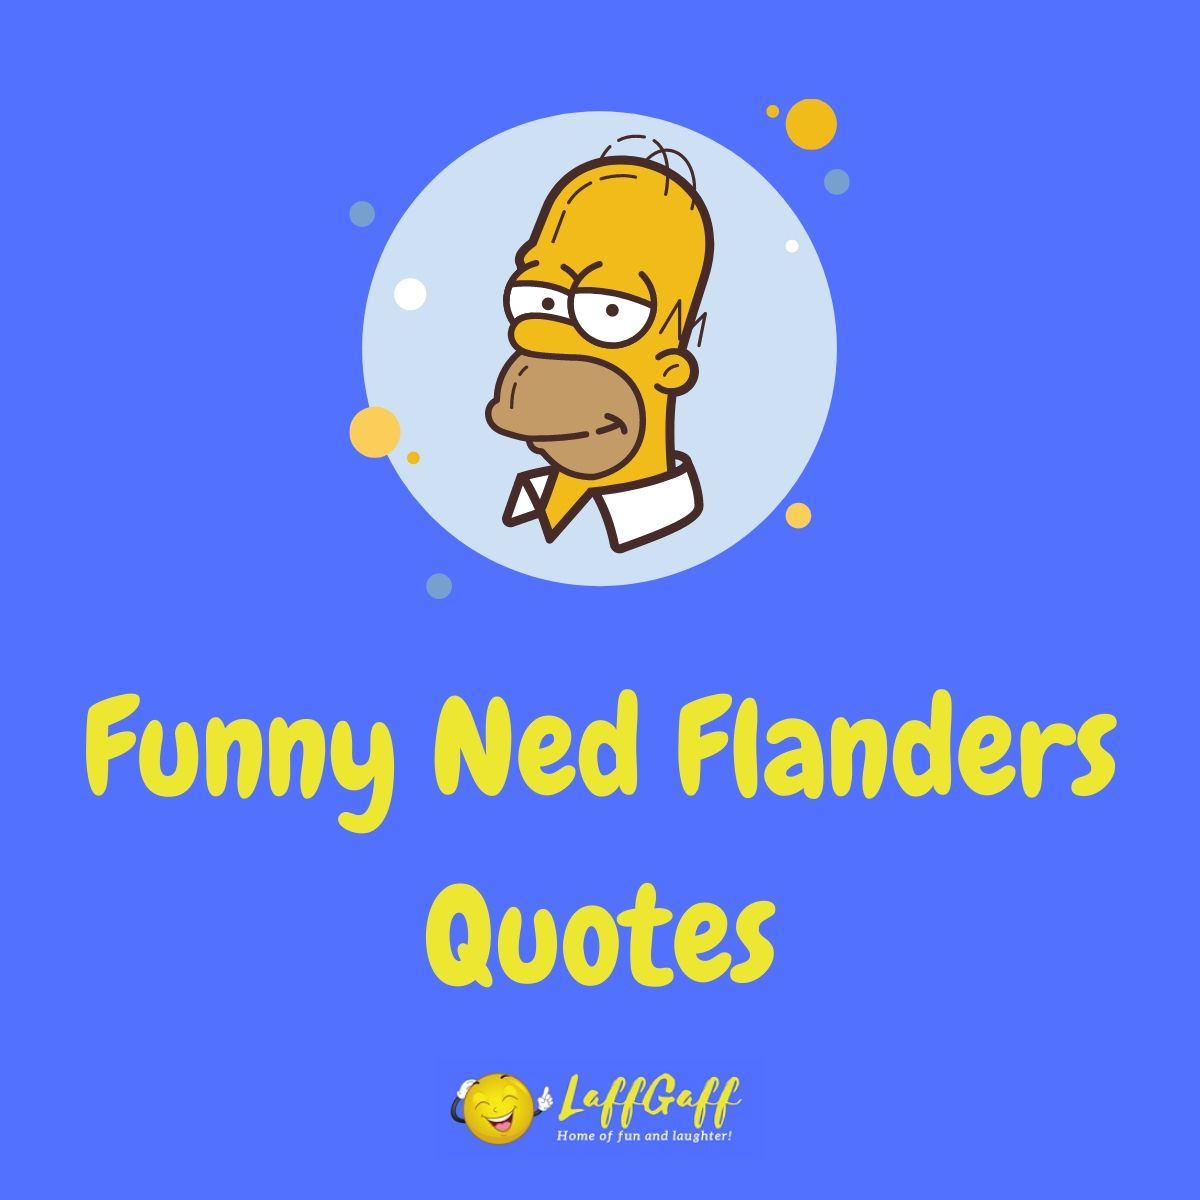 37 Funny Ned Flanders Quotes - The Wisdom Of Ned Flanders!